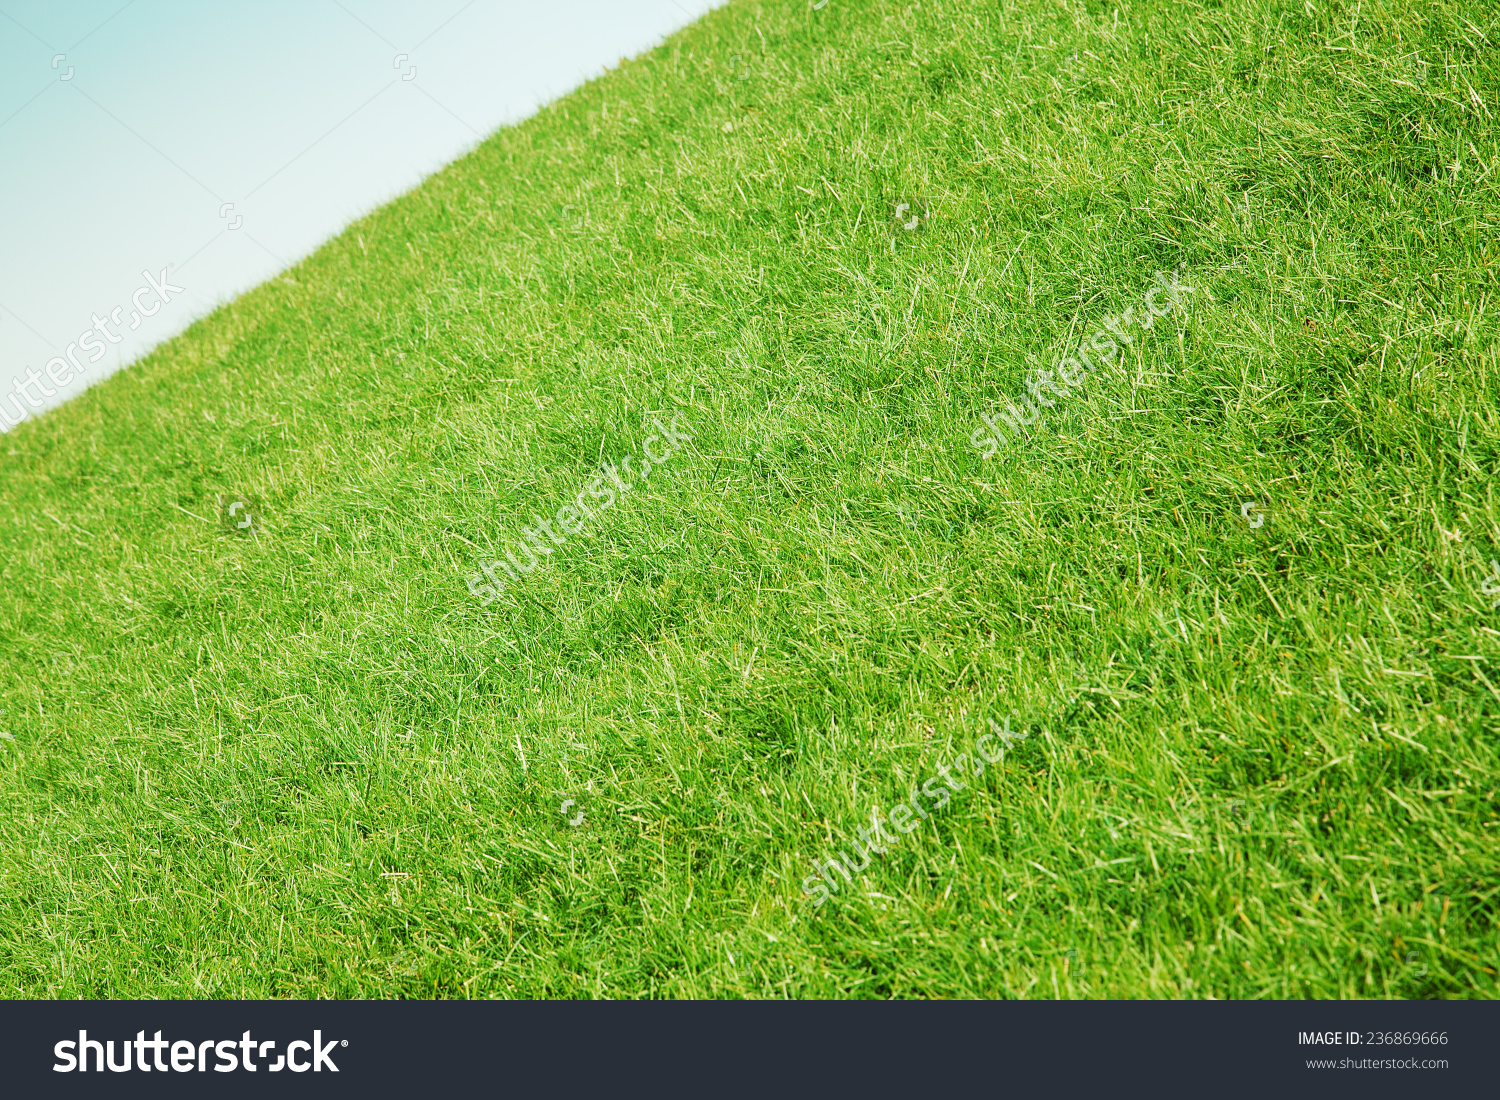 Inclined Slope Green Grass Blue Sky Stock Photo 236869666.